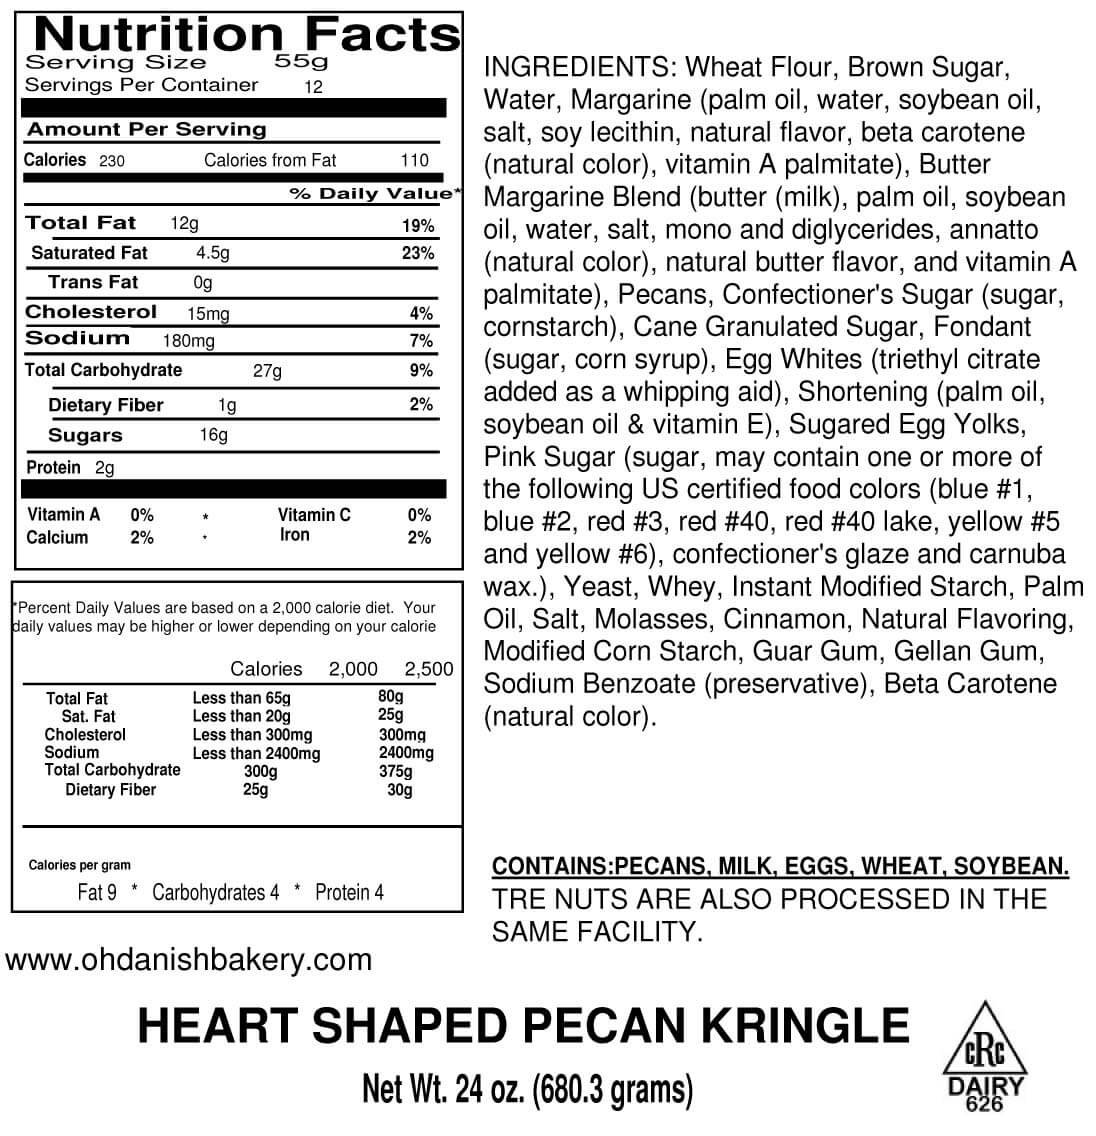 Nutritional Label for Mother's Day Pecan Heart Shaped Kringle